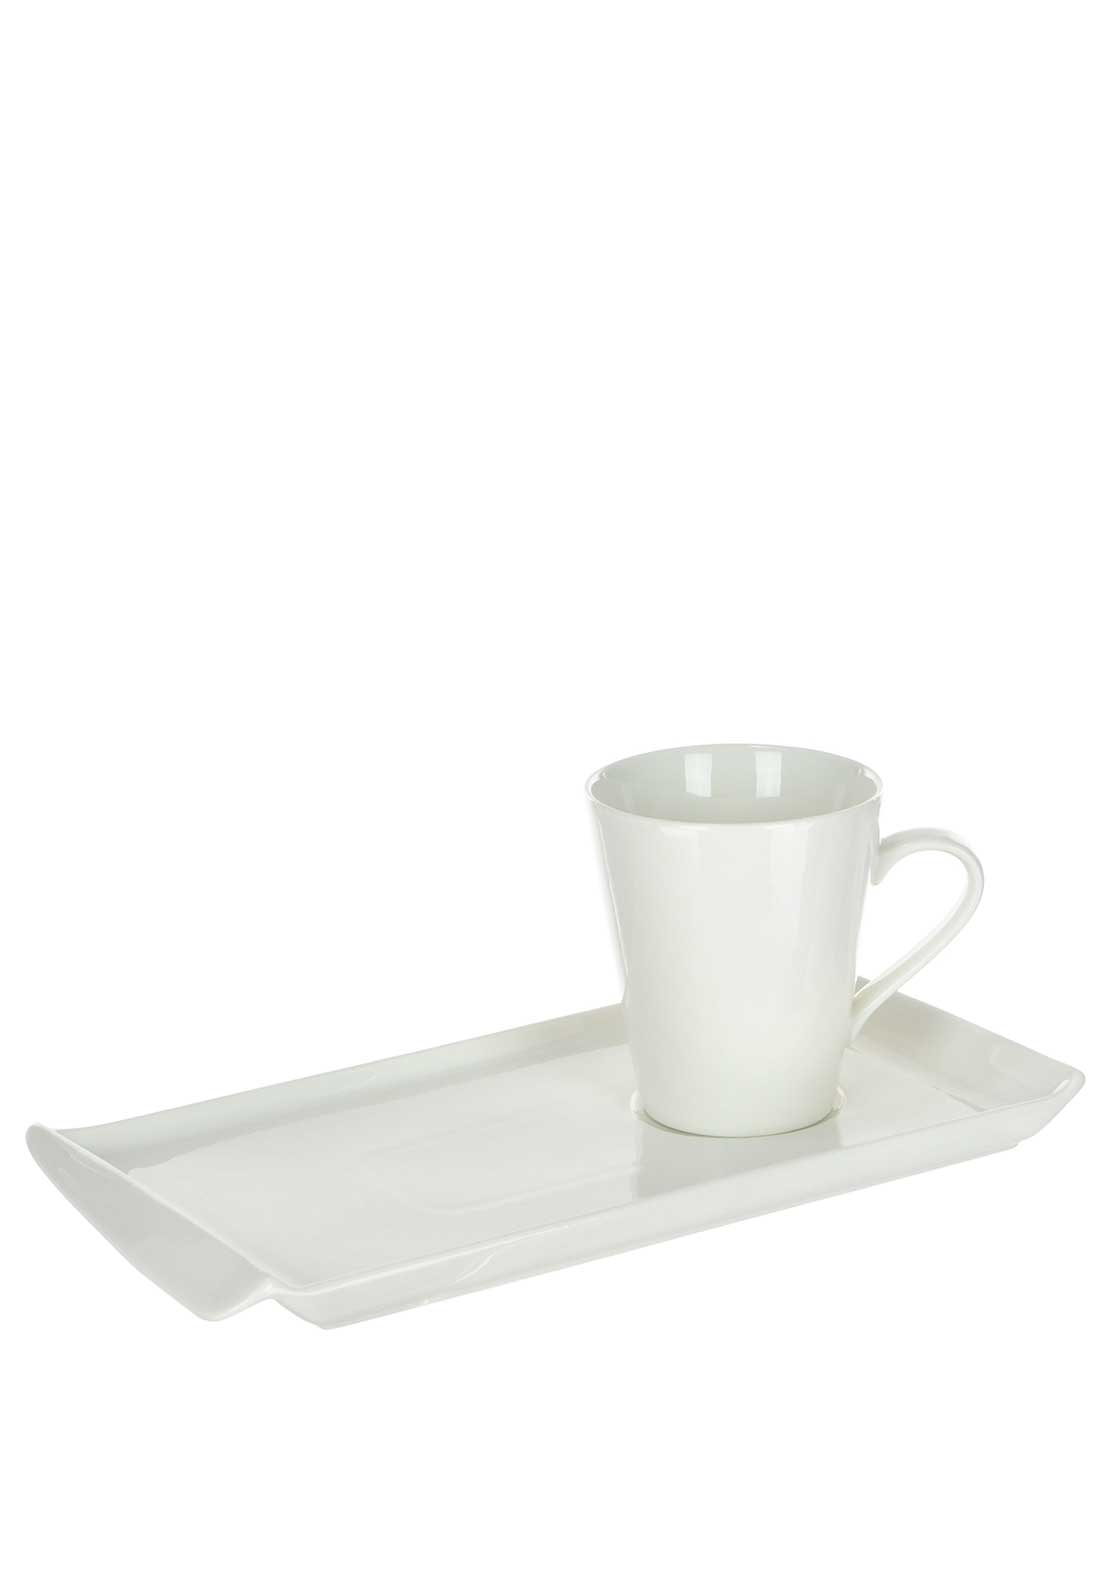 Slaneyside Pottery Tea and Sandwich Plate, White